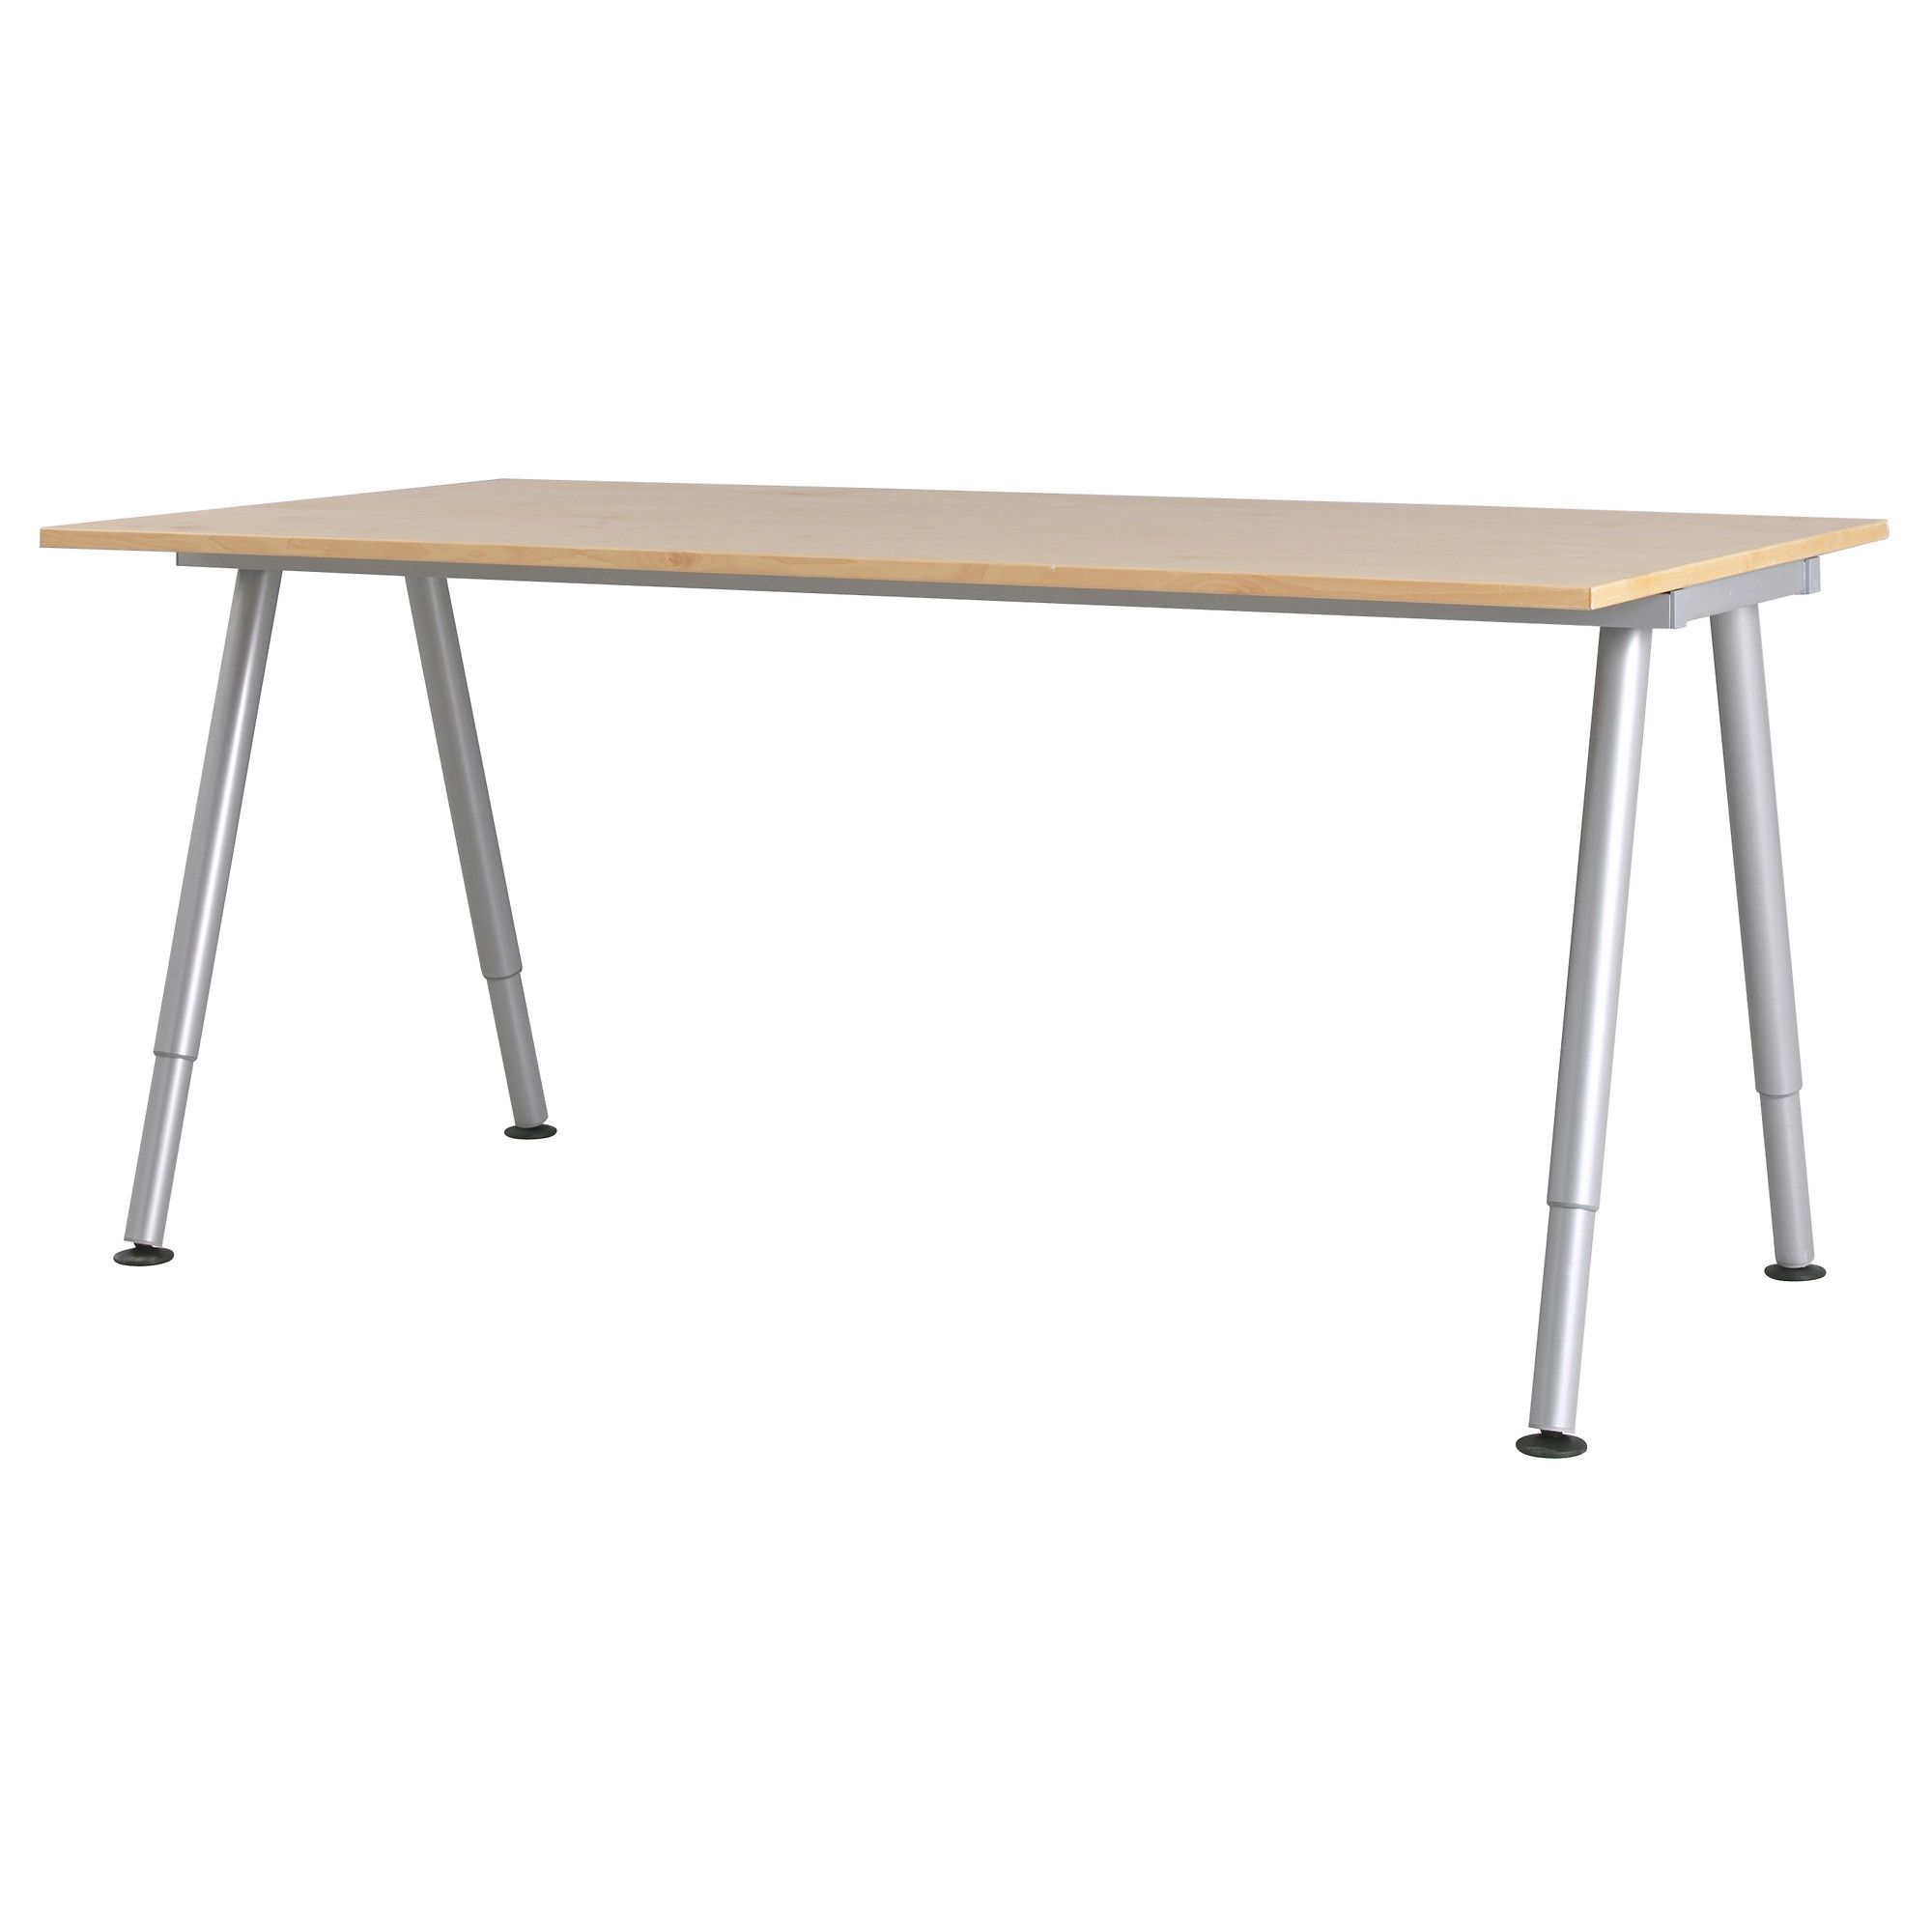 Ikea Galant Bureau Galant Desk Birch Veneer A Leg Silver Color Ikea Sewing Gold